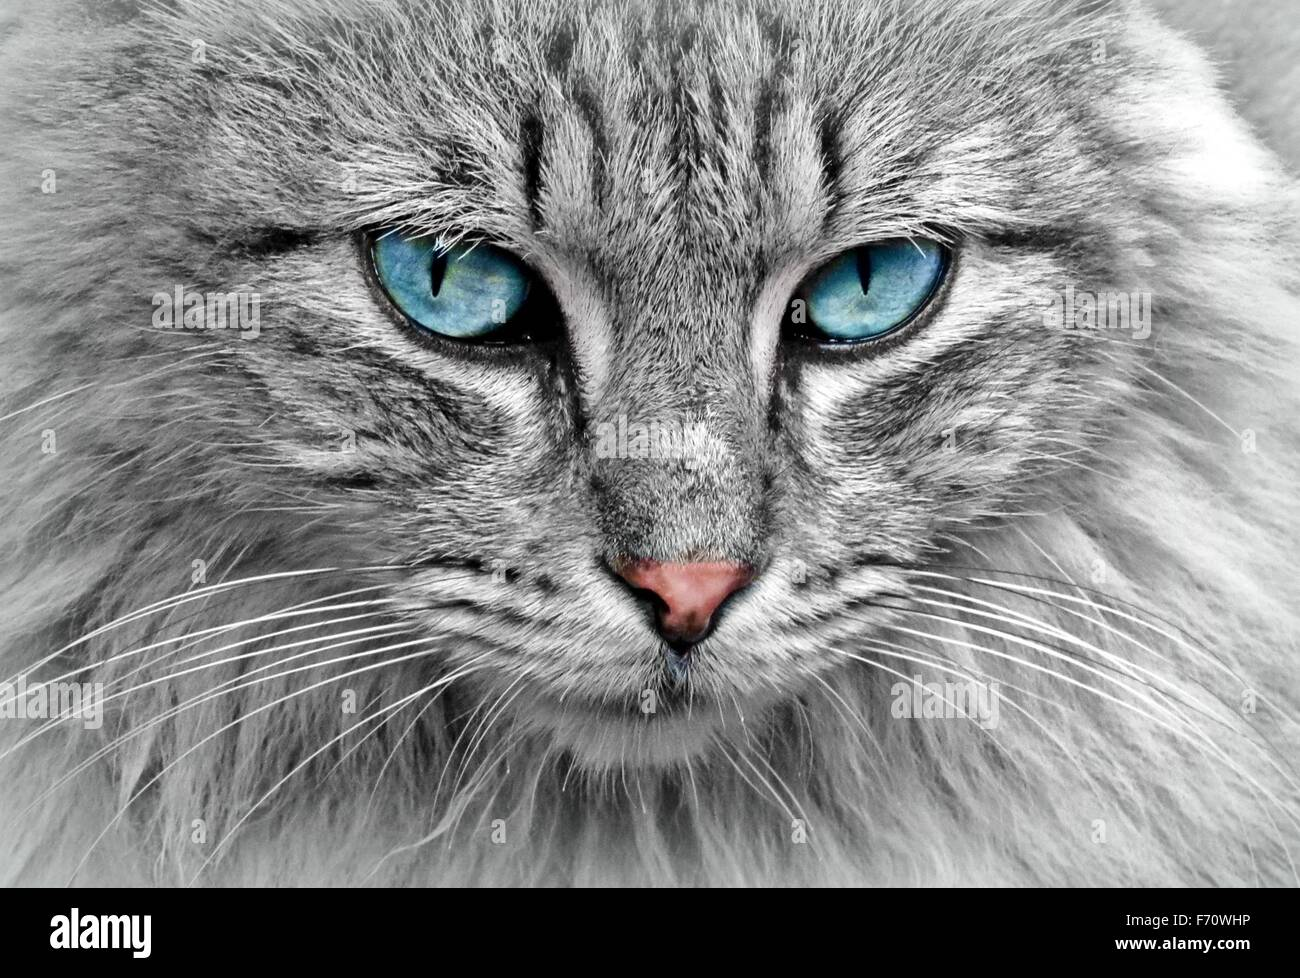 Full frame portrait of a grey tabby cat with blue eyes - Stock Image